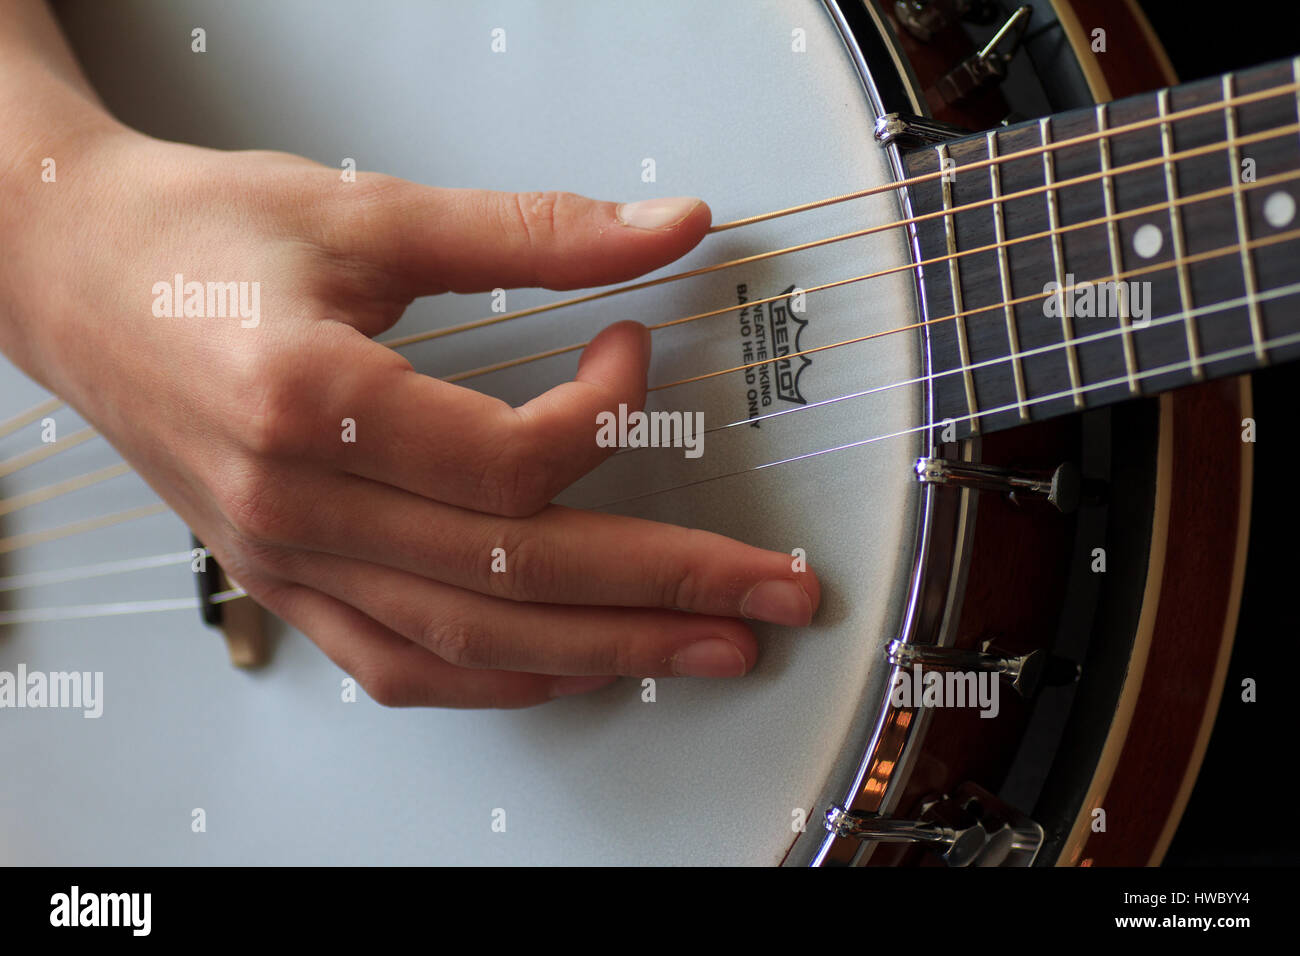 Hand of banjo player picking strings on banjo - Stock Image